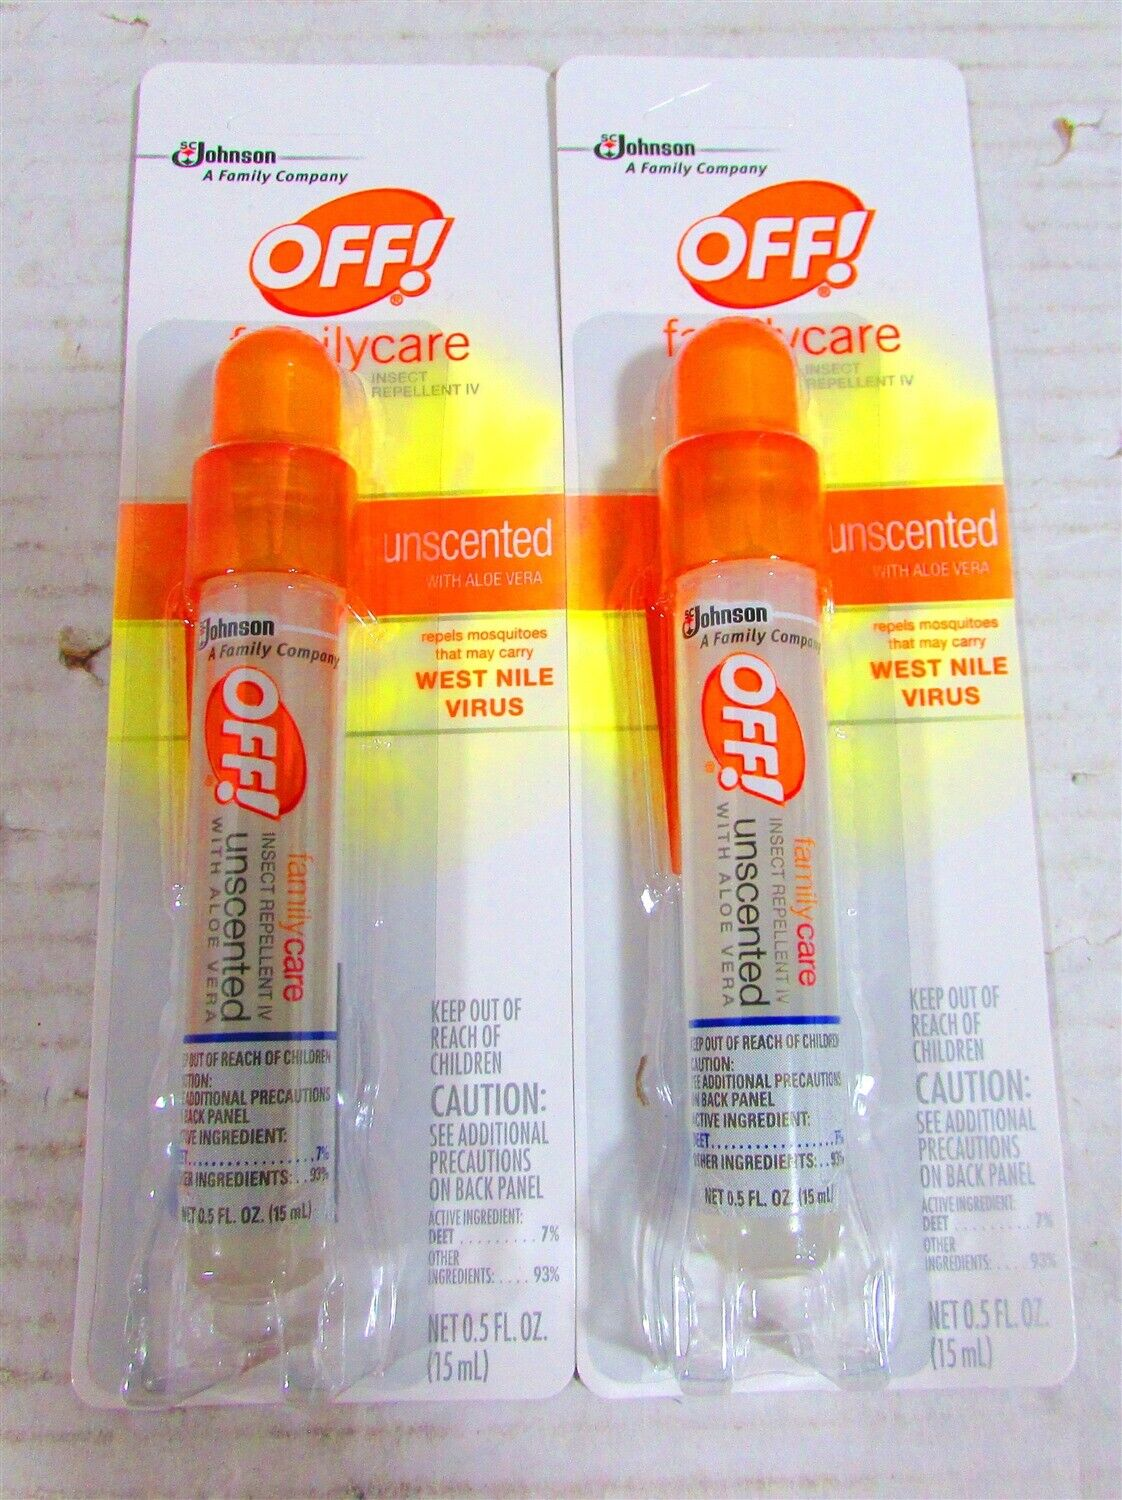 Off! Family Care Unscented Insect Repellent 0.5 fl. oz. Spra